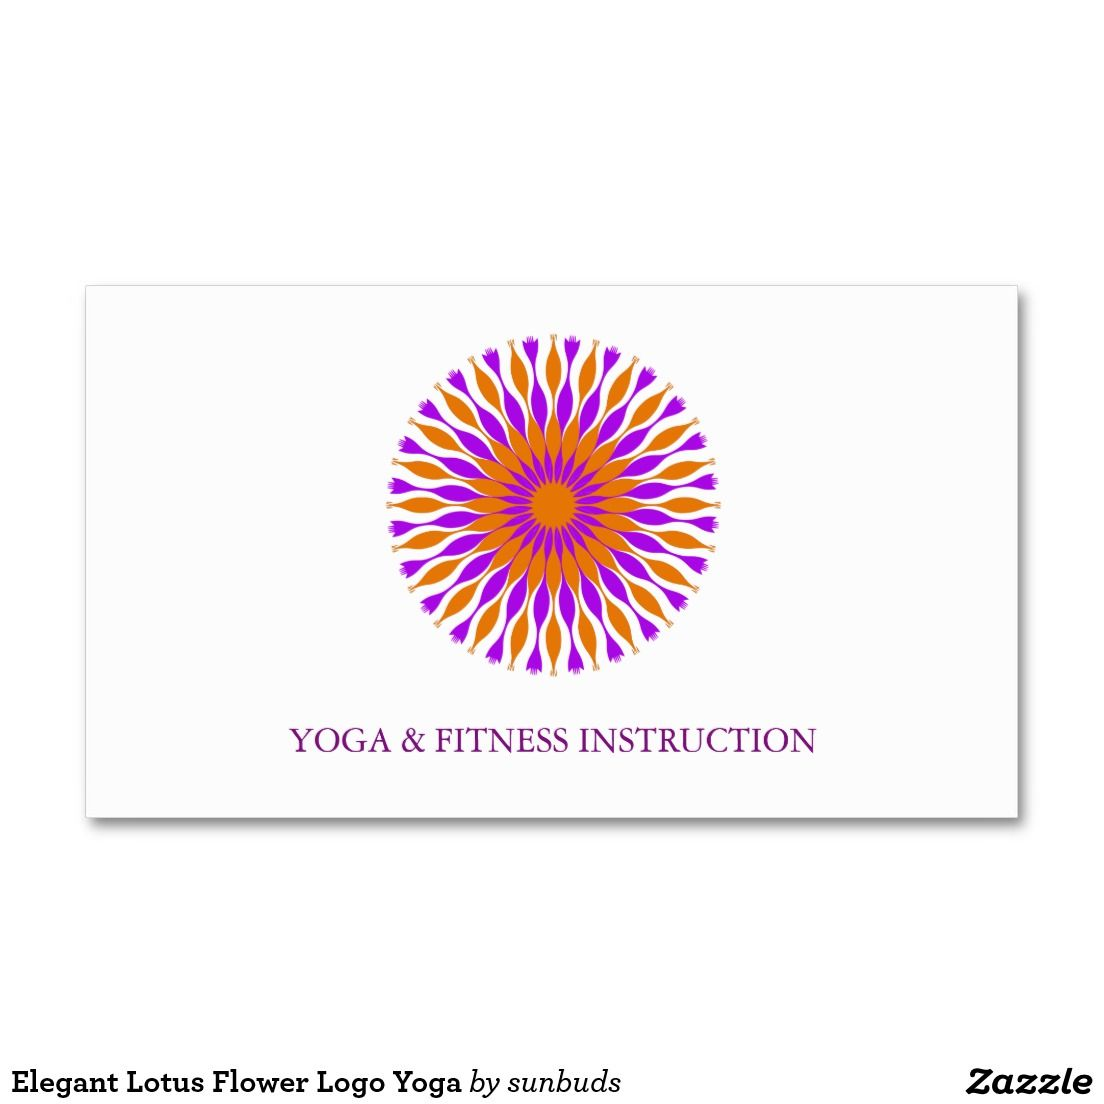 Elegant Lotus Flower Logo Yoga Business Card Cards And Postage